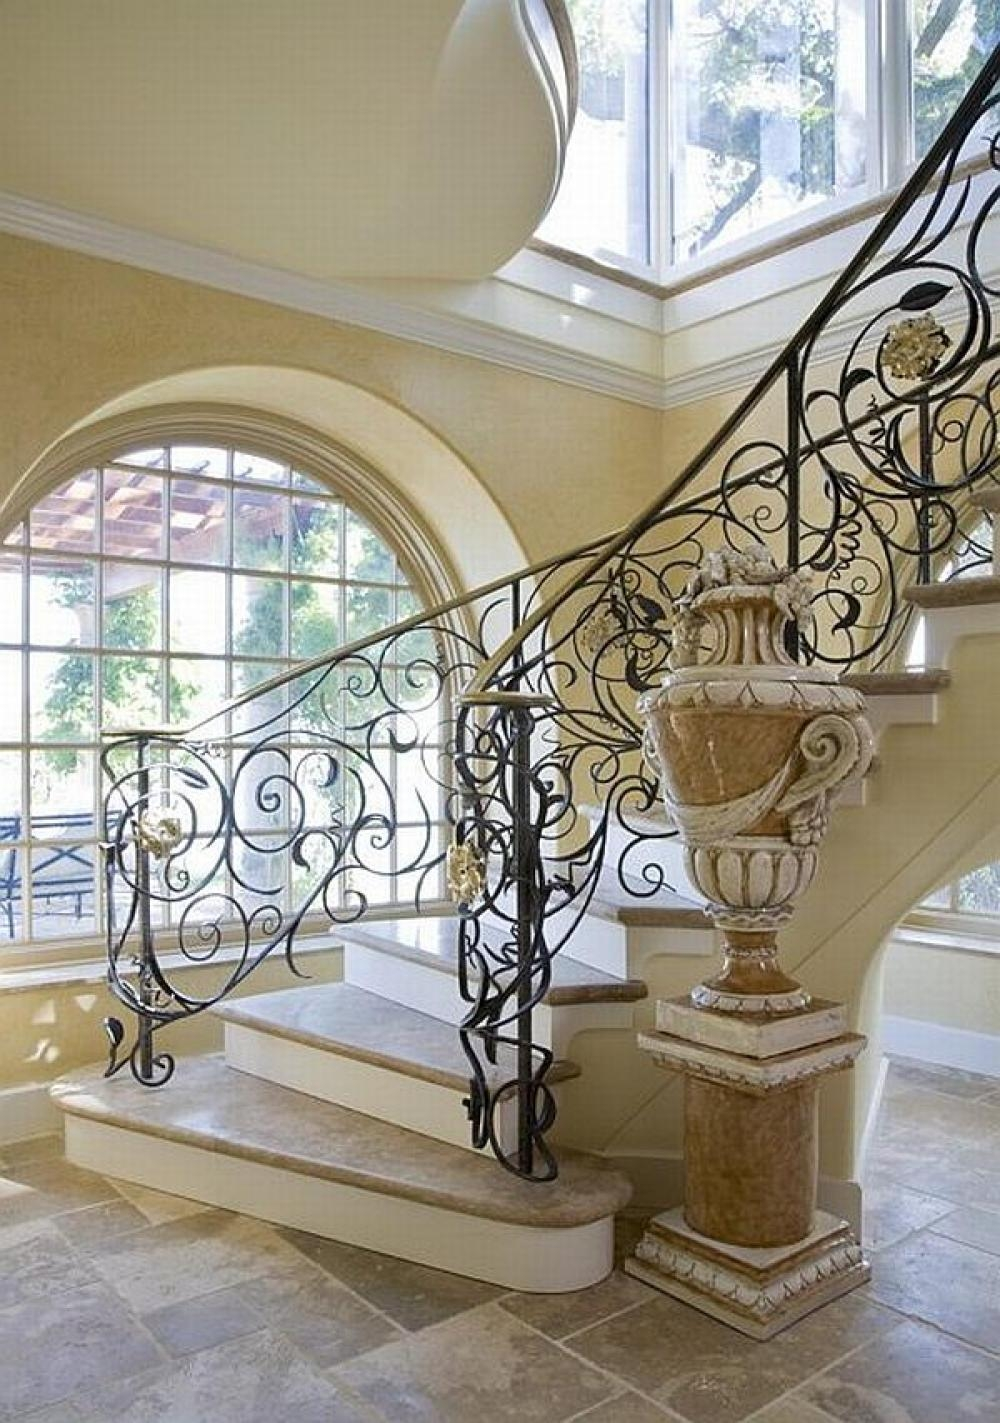 Iron Railings For Stairs Buy Factory Direct To Save Money | Iron Railings For Steps